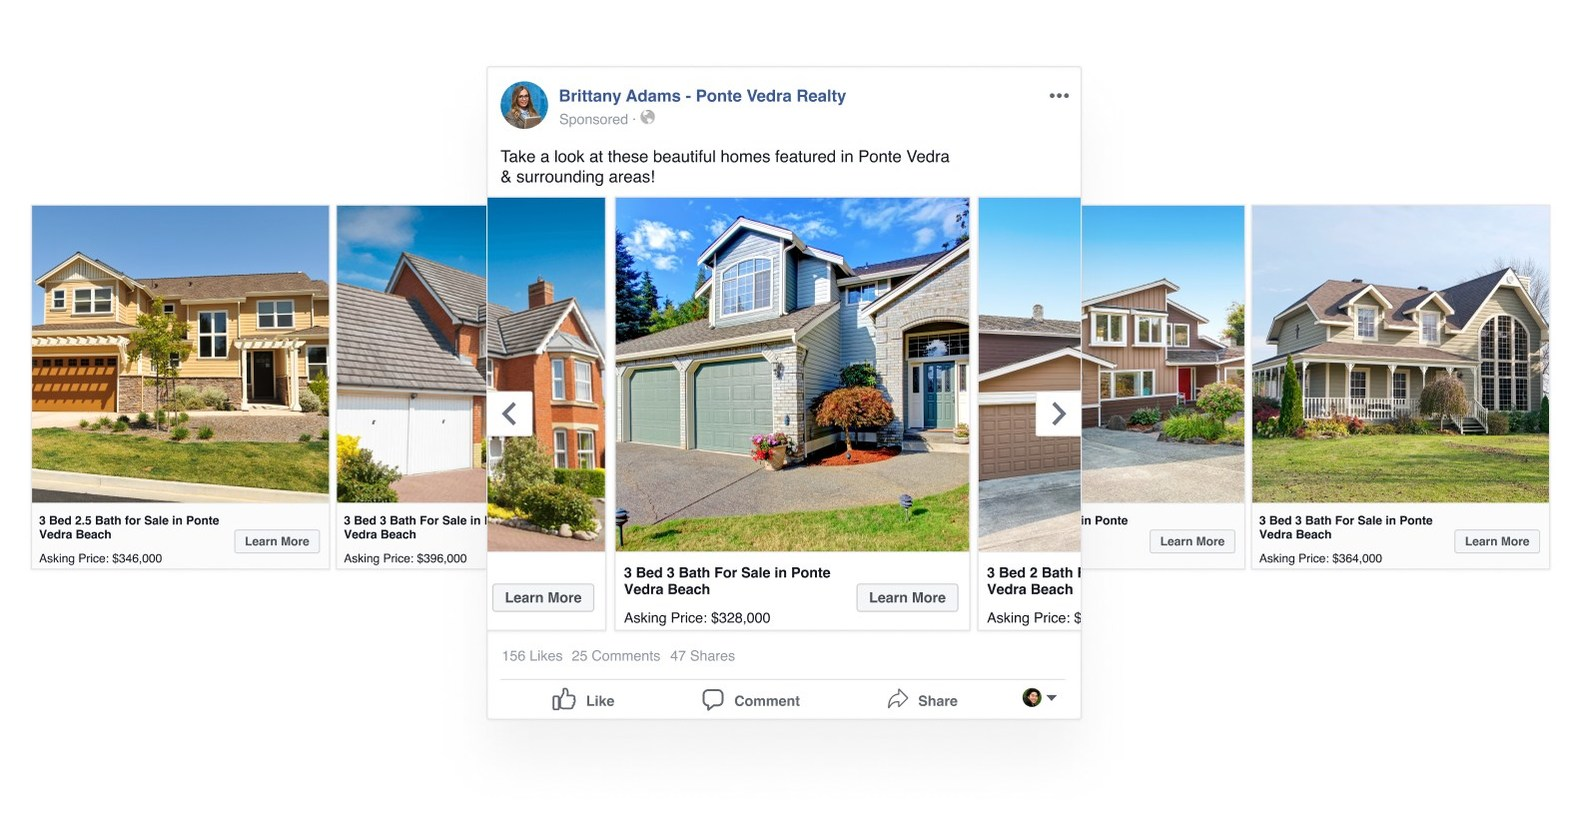 Home Asap Projects Facebook Dynamic Ads For Real Estate Will Dominate The Marketing Landscape In 2020 Lowering Lead Costs By Up To 54